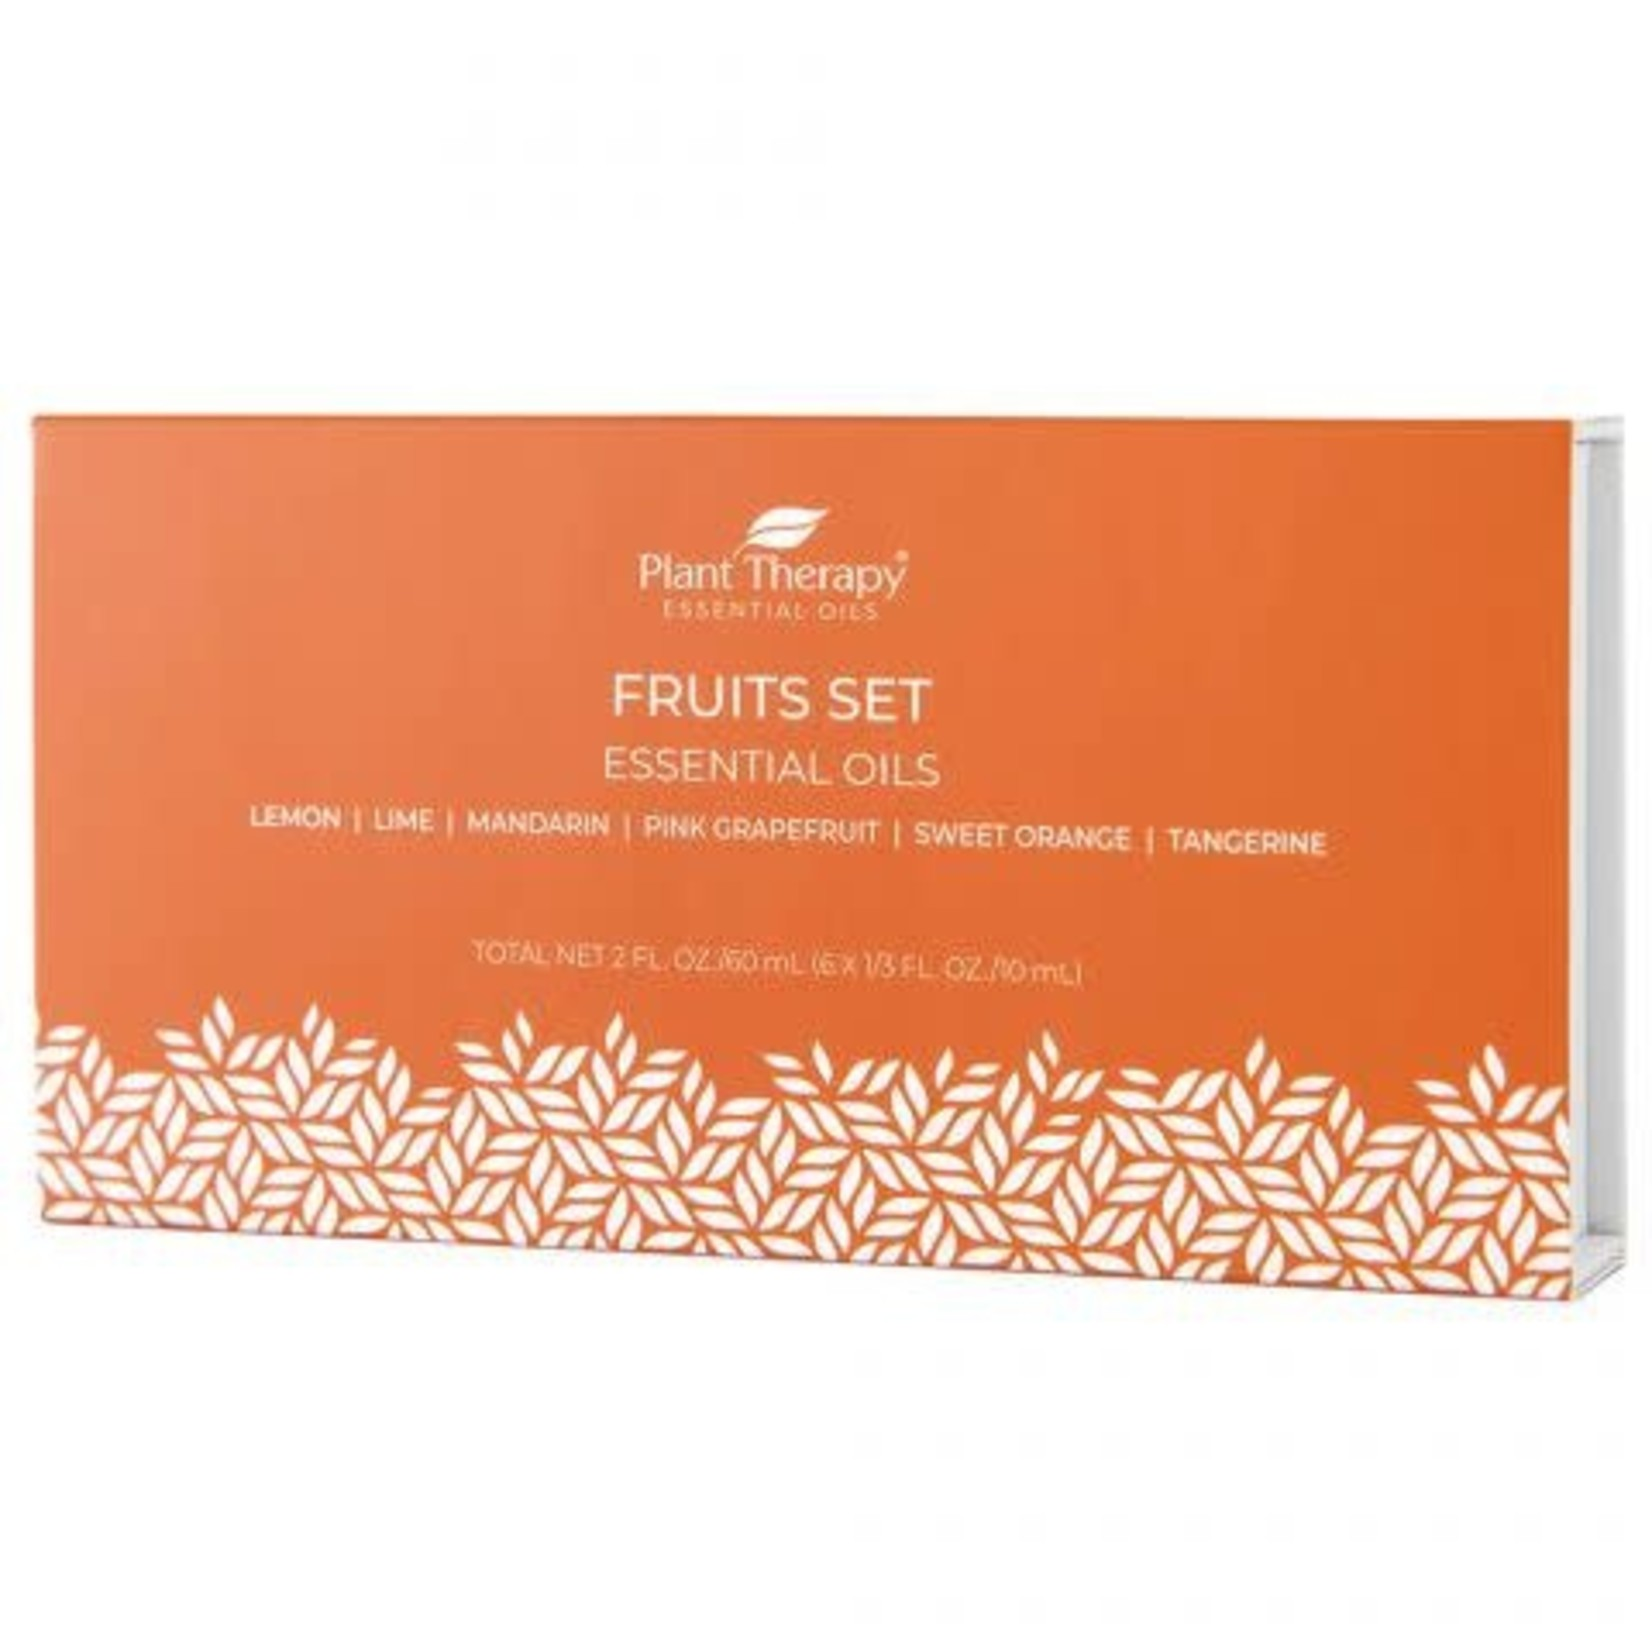 Plant Therapy PT Fruits Essential Oil Set